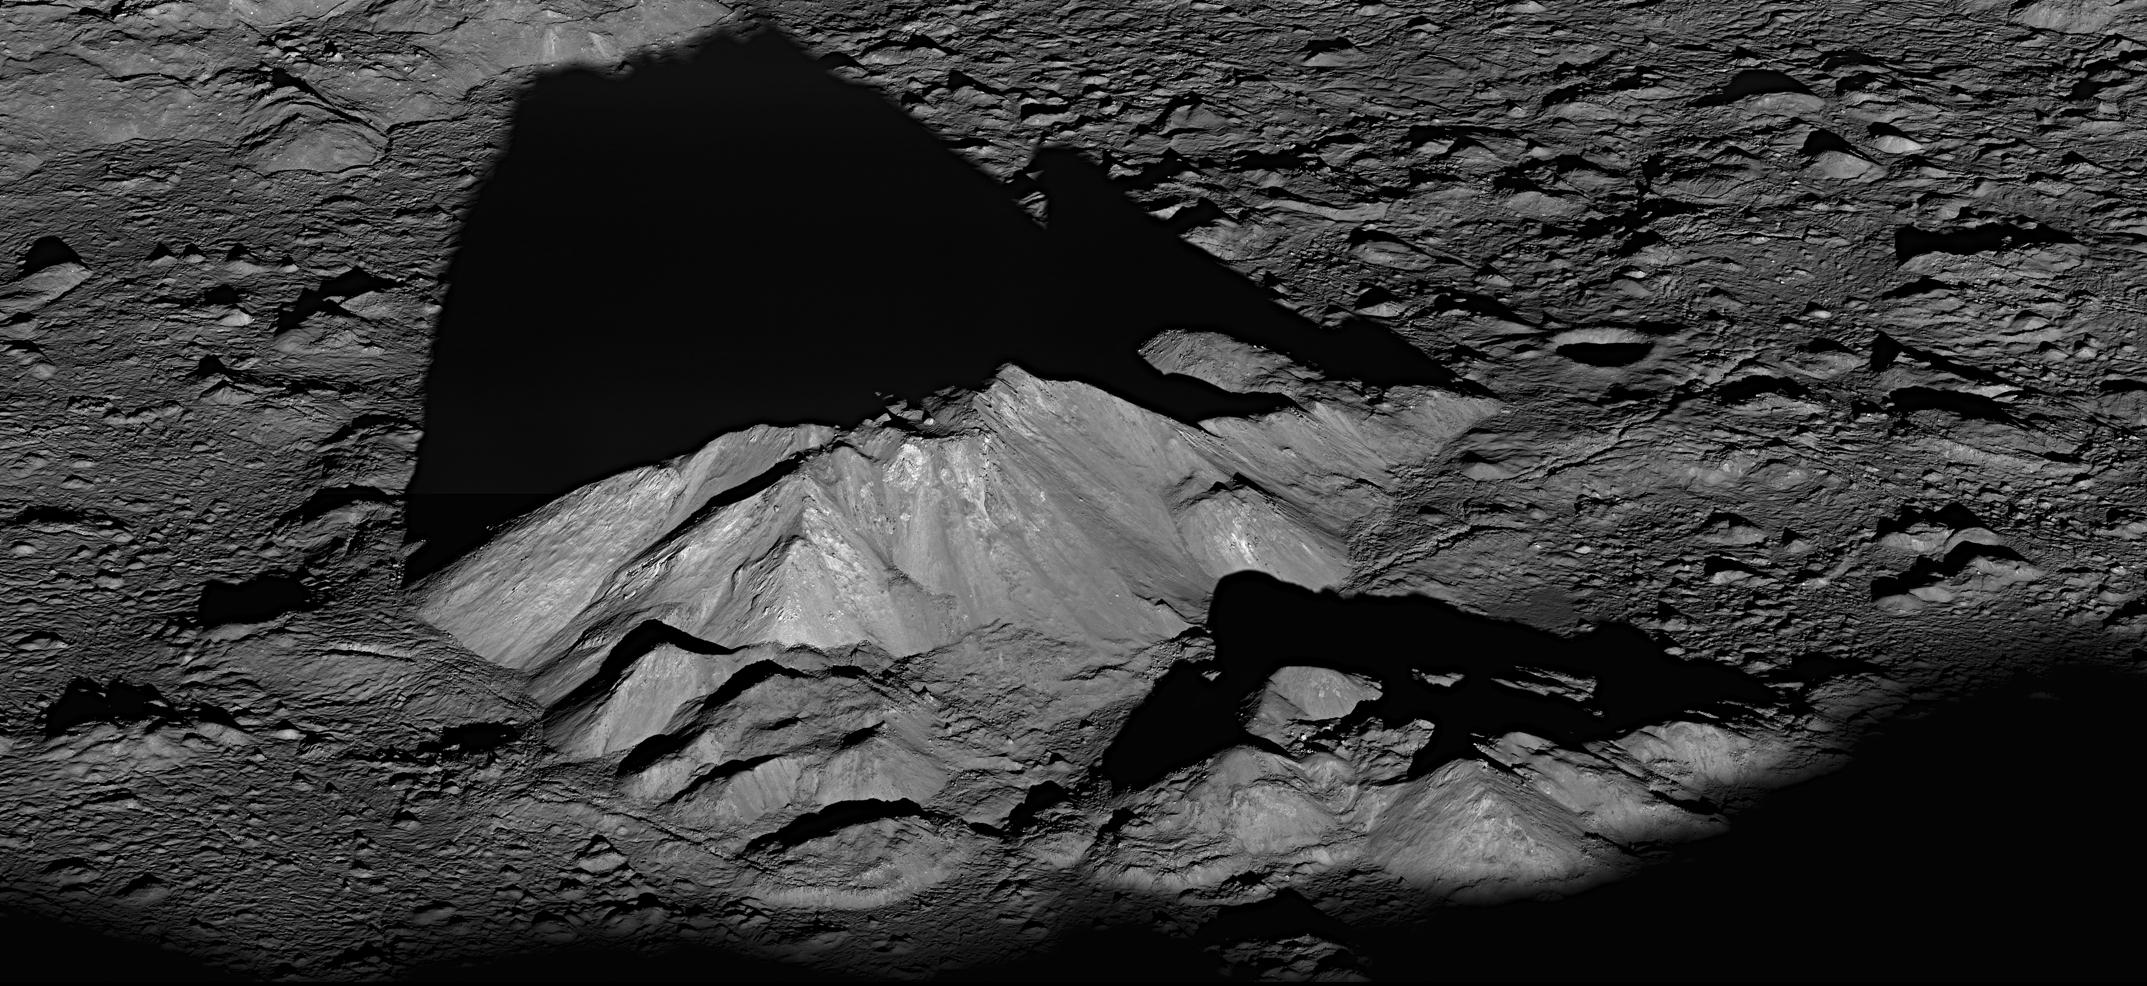 Images of Tycho Crater on the Moon.